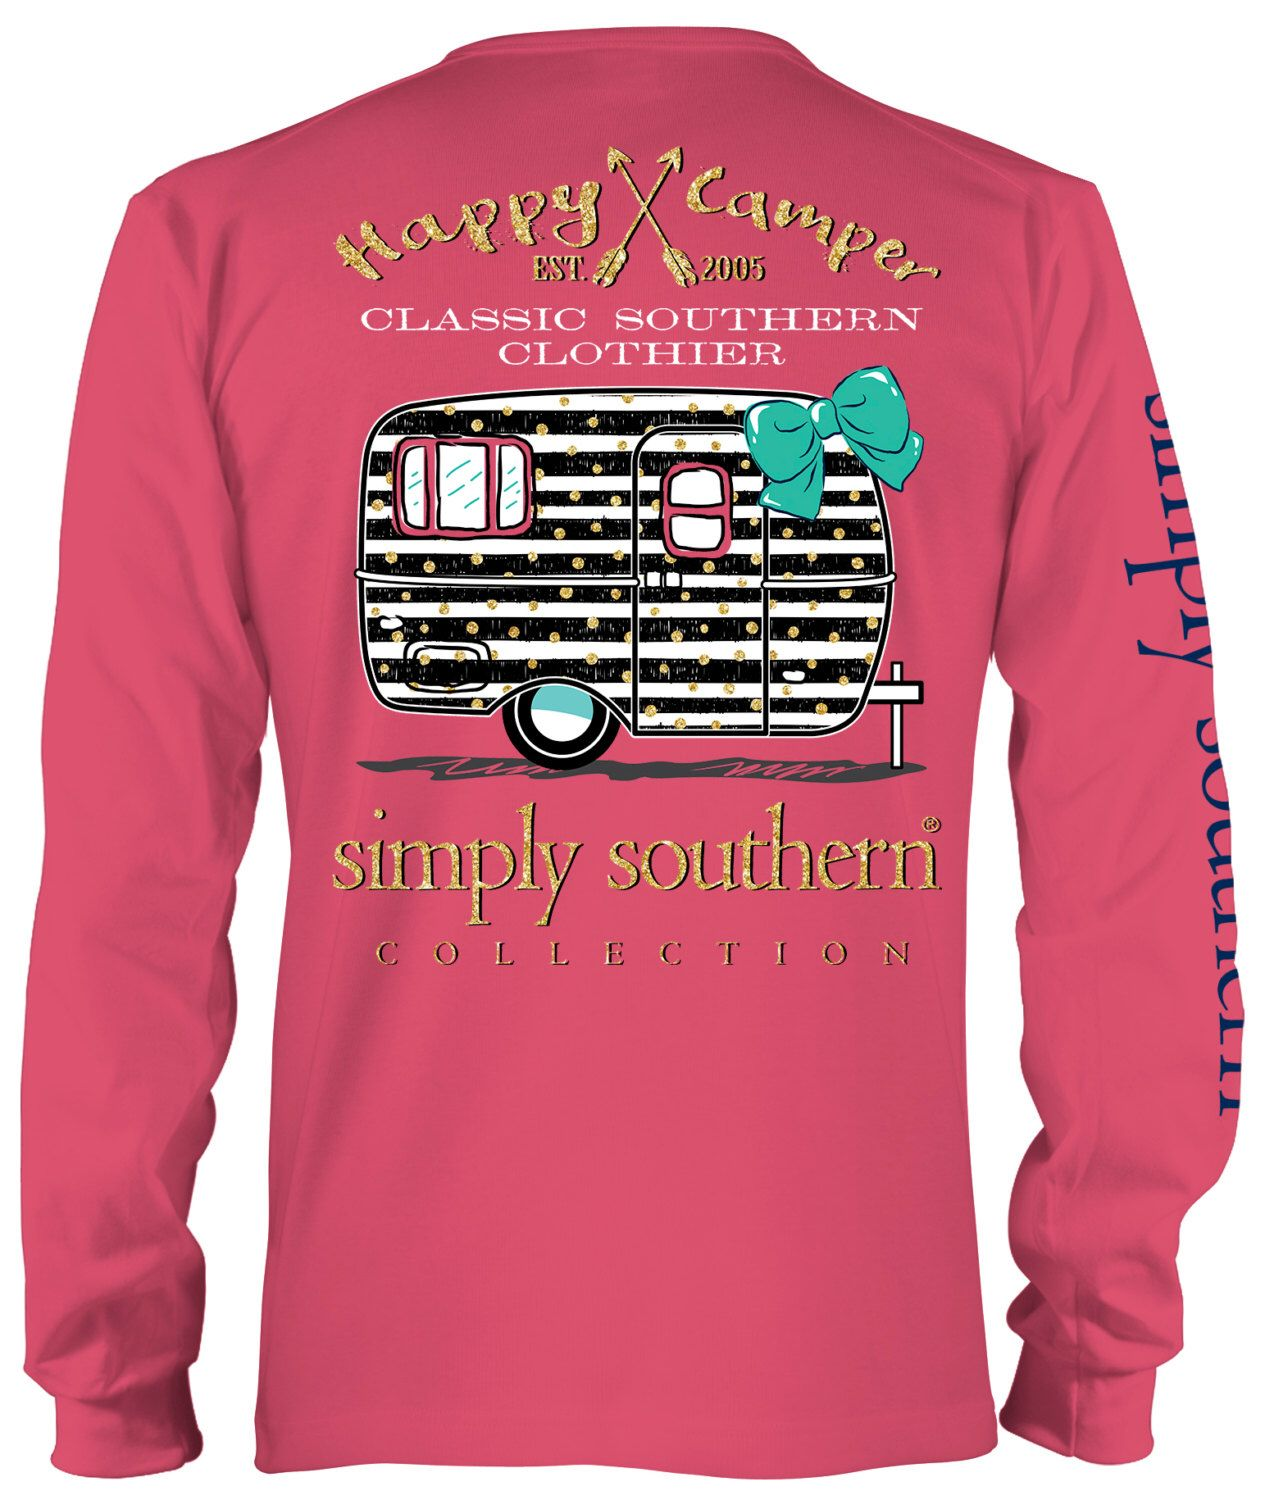 4625b9c2d HAPPY CAMPER Adult Sizes $14.00 Simply Southern T Shirts, Preppy Southern, Southern  Prep,